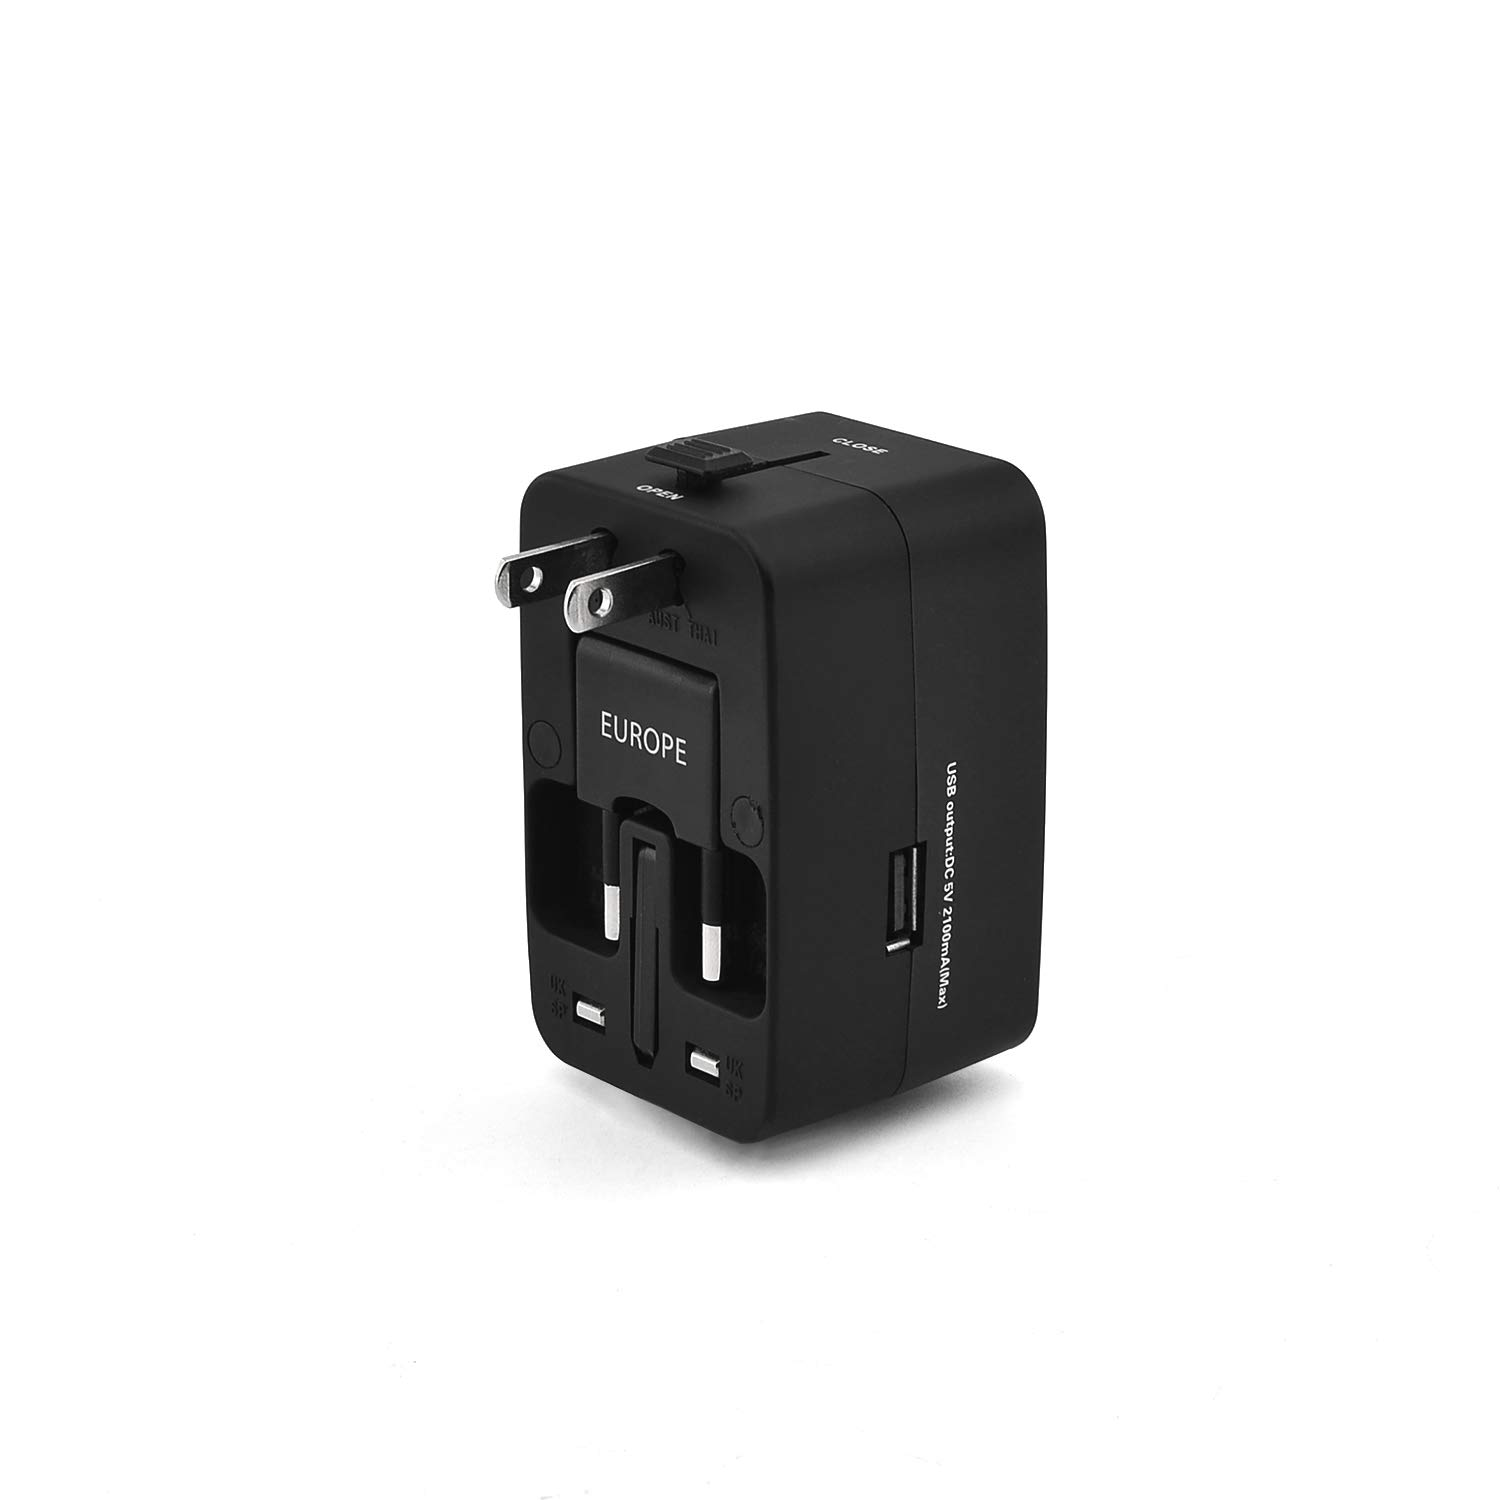 Travel Adapter, Worldwide All in One Universal Travel Adapter Wall AC Power Plug Adapter Wall Charger with USB Charging Ports for USA EU UK AUS Cell Phone Laptop